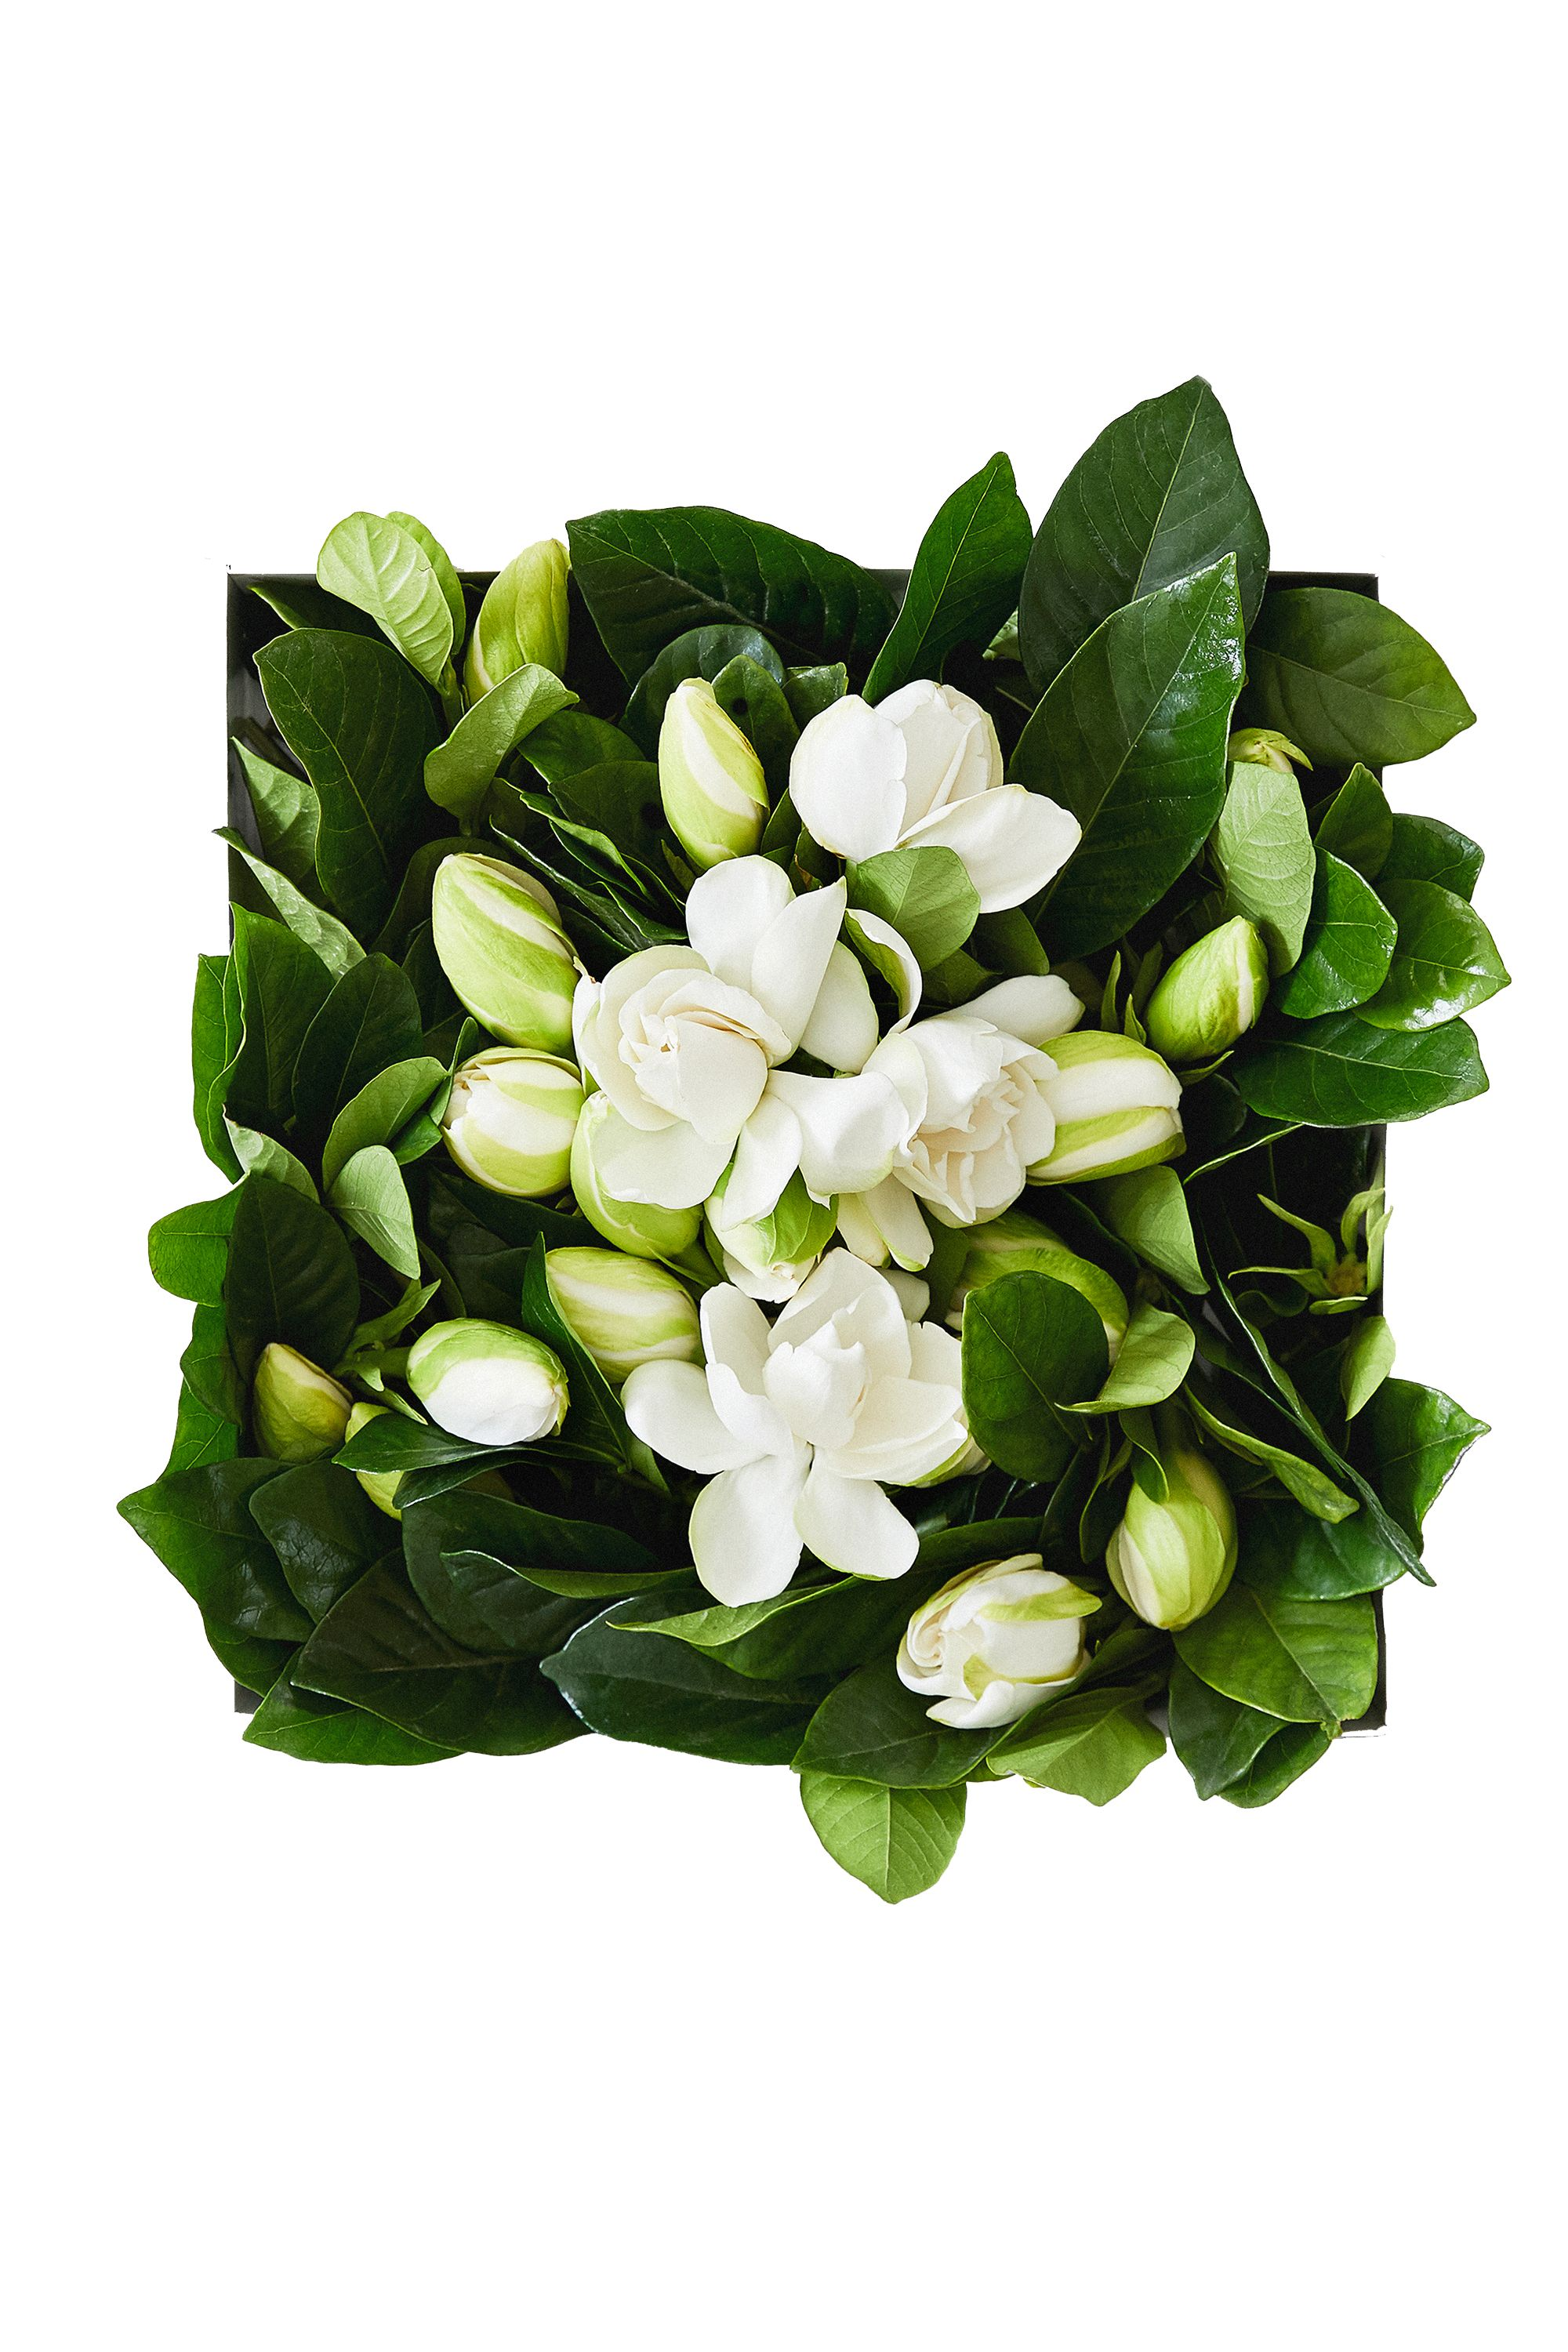 """<p>Fresh-cut flowers make any table more beautiful. Skip the pre-fab bouquet in favor of a delivery of loose gardenias perfect for arranging in your own glassware.</p><p><em data-redactor-tag=""""em"""" data-verified=""""redactor"""">High Camp Vine & Bloom Box, $129; </em><a href=""""https://www.highcampsupply.com/shop/vine-bloom-box"""" target=""""_blank"""" data-tracking-id=""""recirc-text-link""""><em data-redactor-tag=""""em"""" data-verified=""""redactor"""">highcampsupply.com</em></a></p>"""